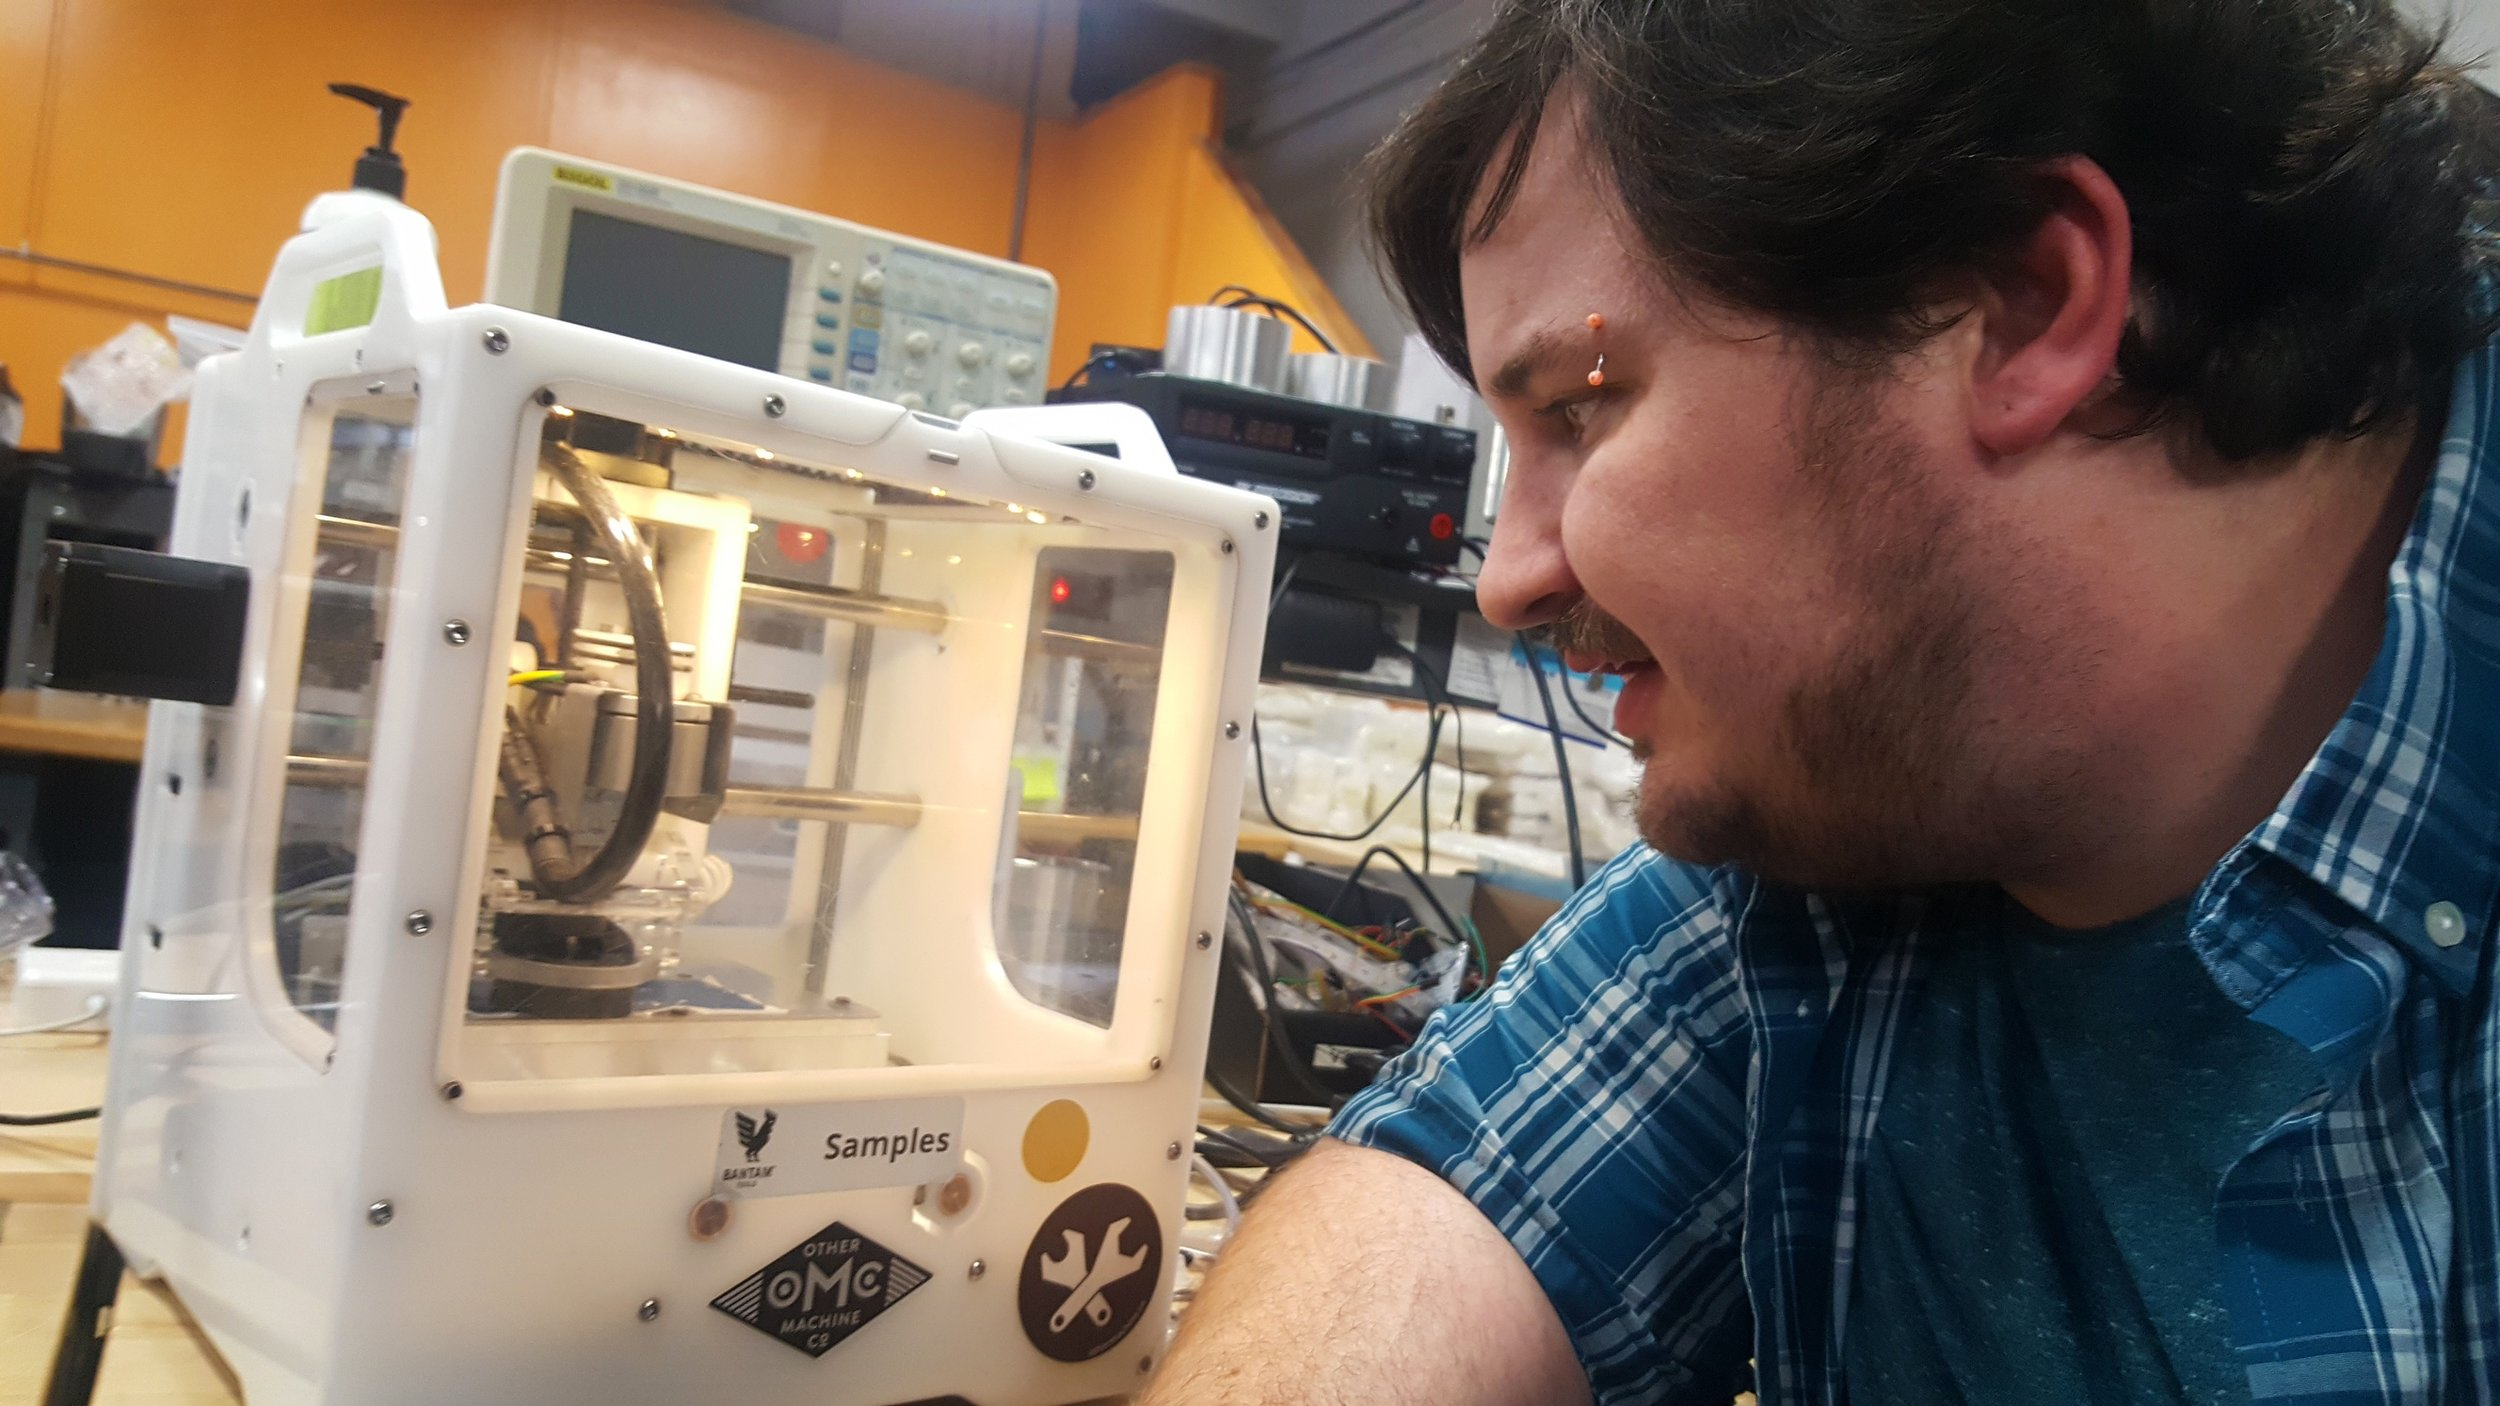 Devin with the Bantam Tools Desktop PCB Milling Machine.